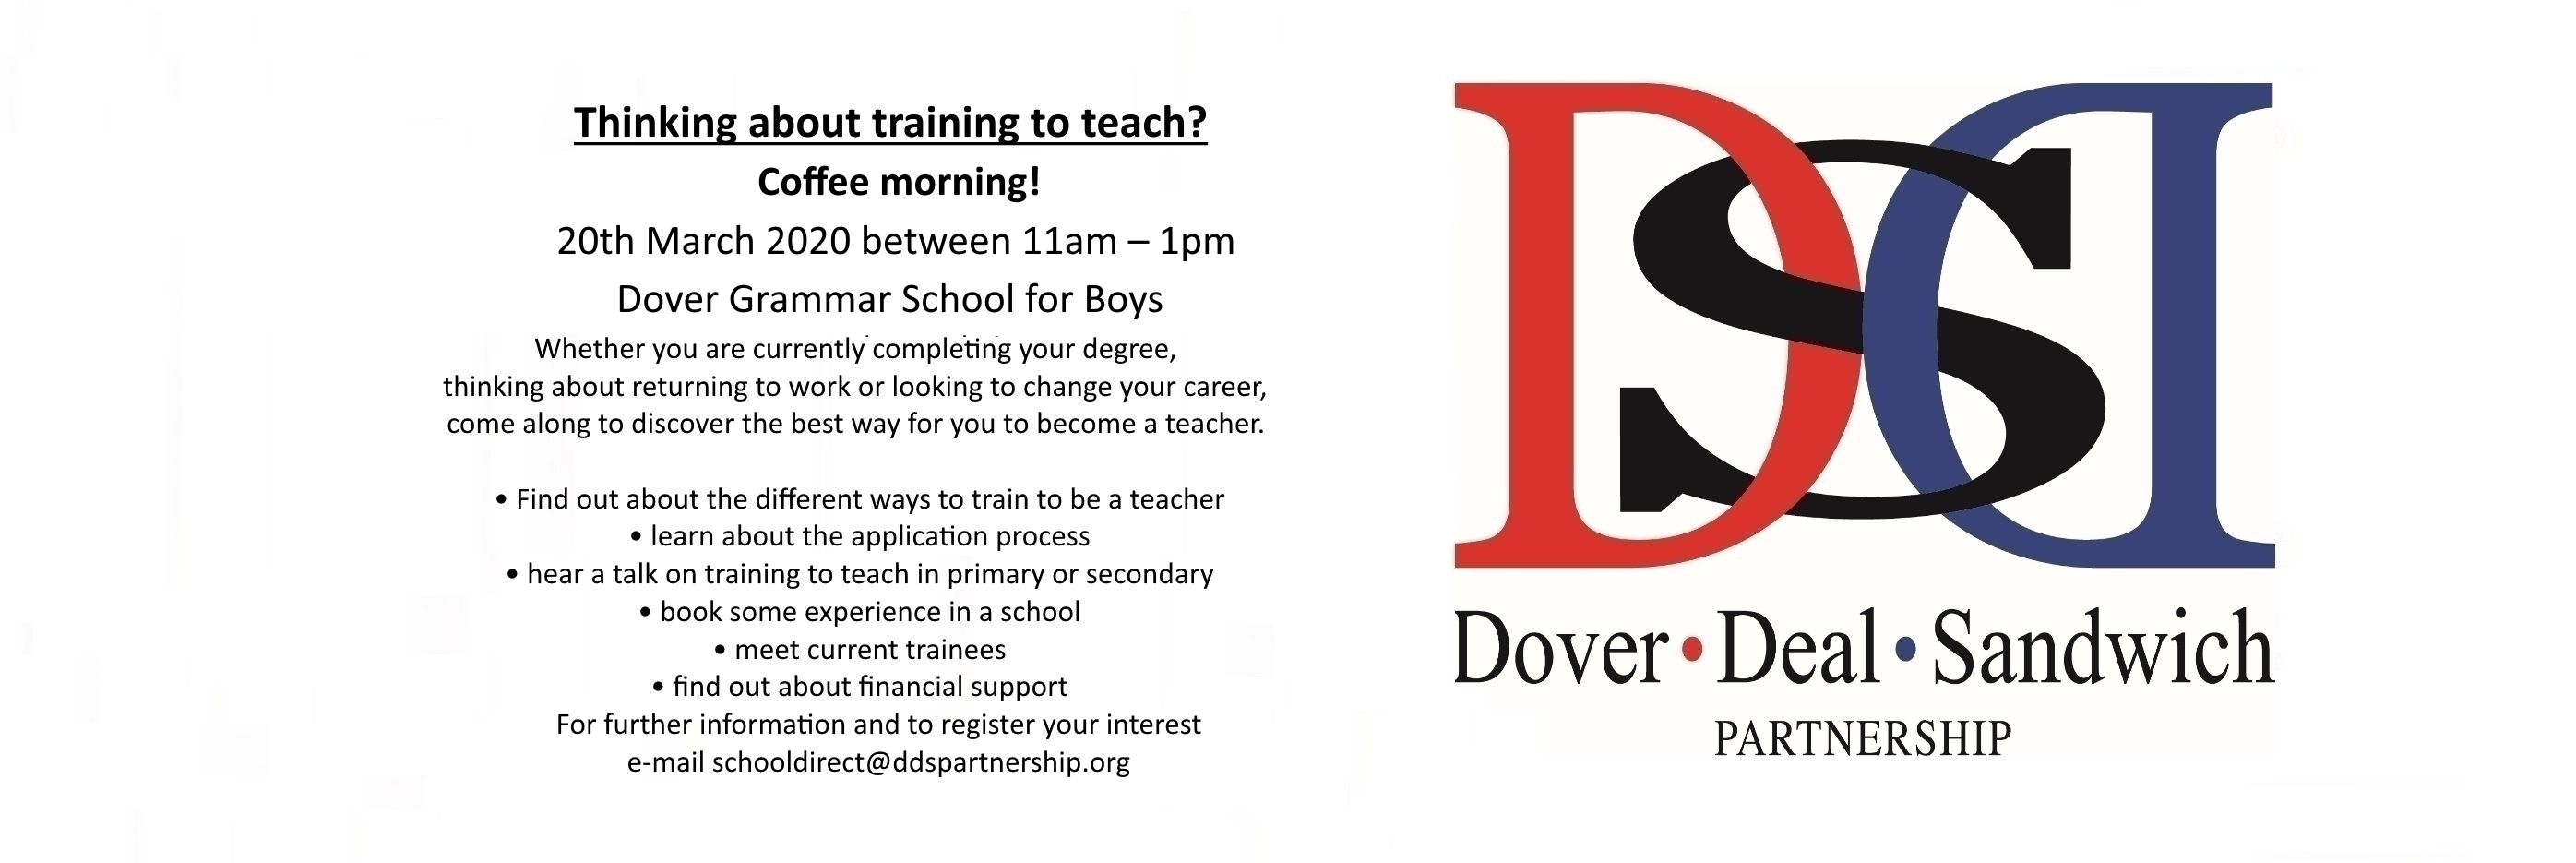 20th March  open morning DGSB